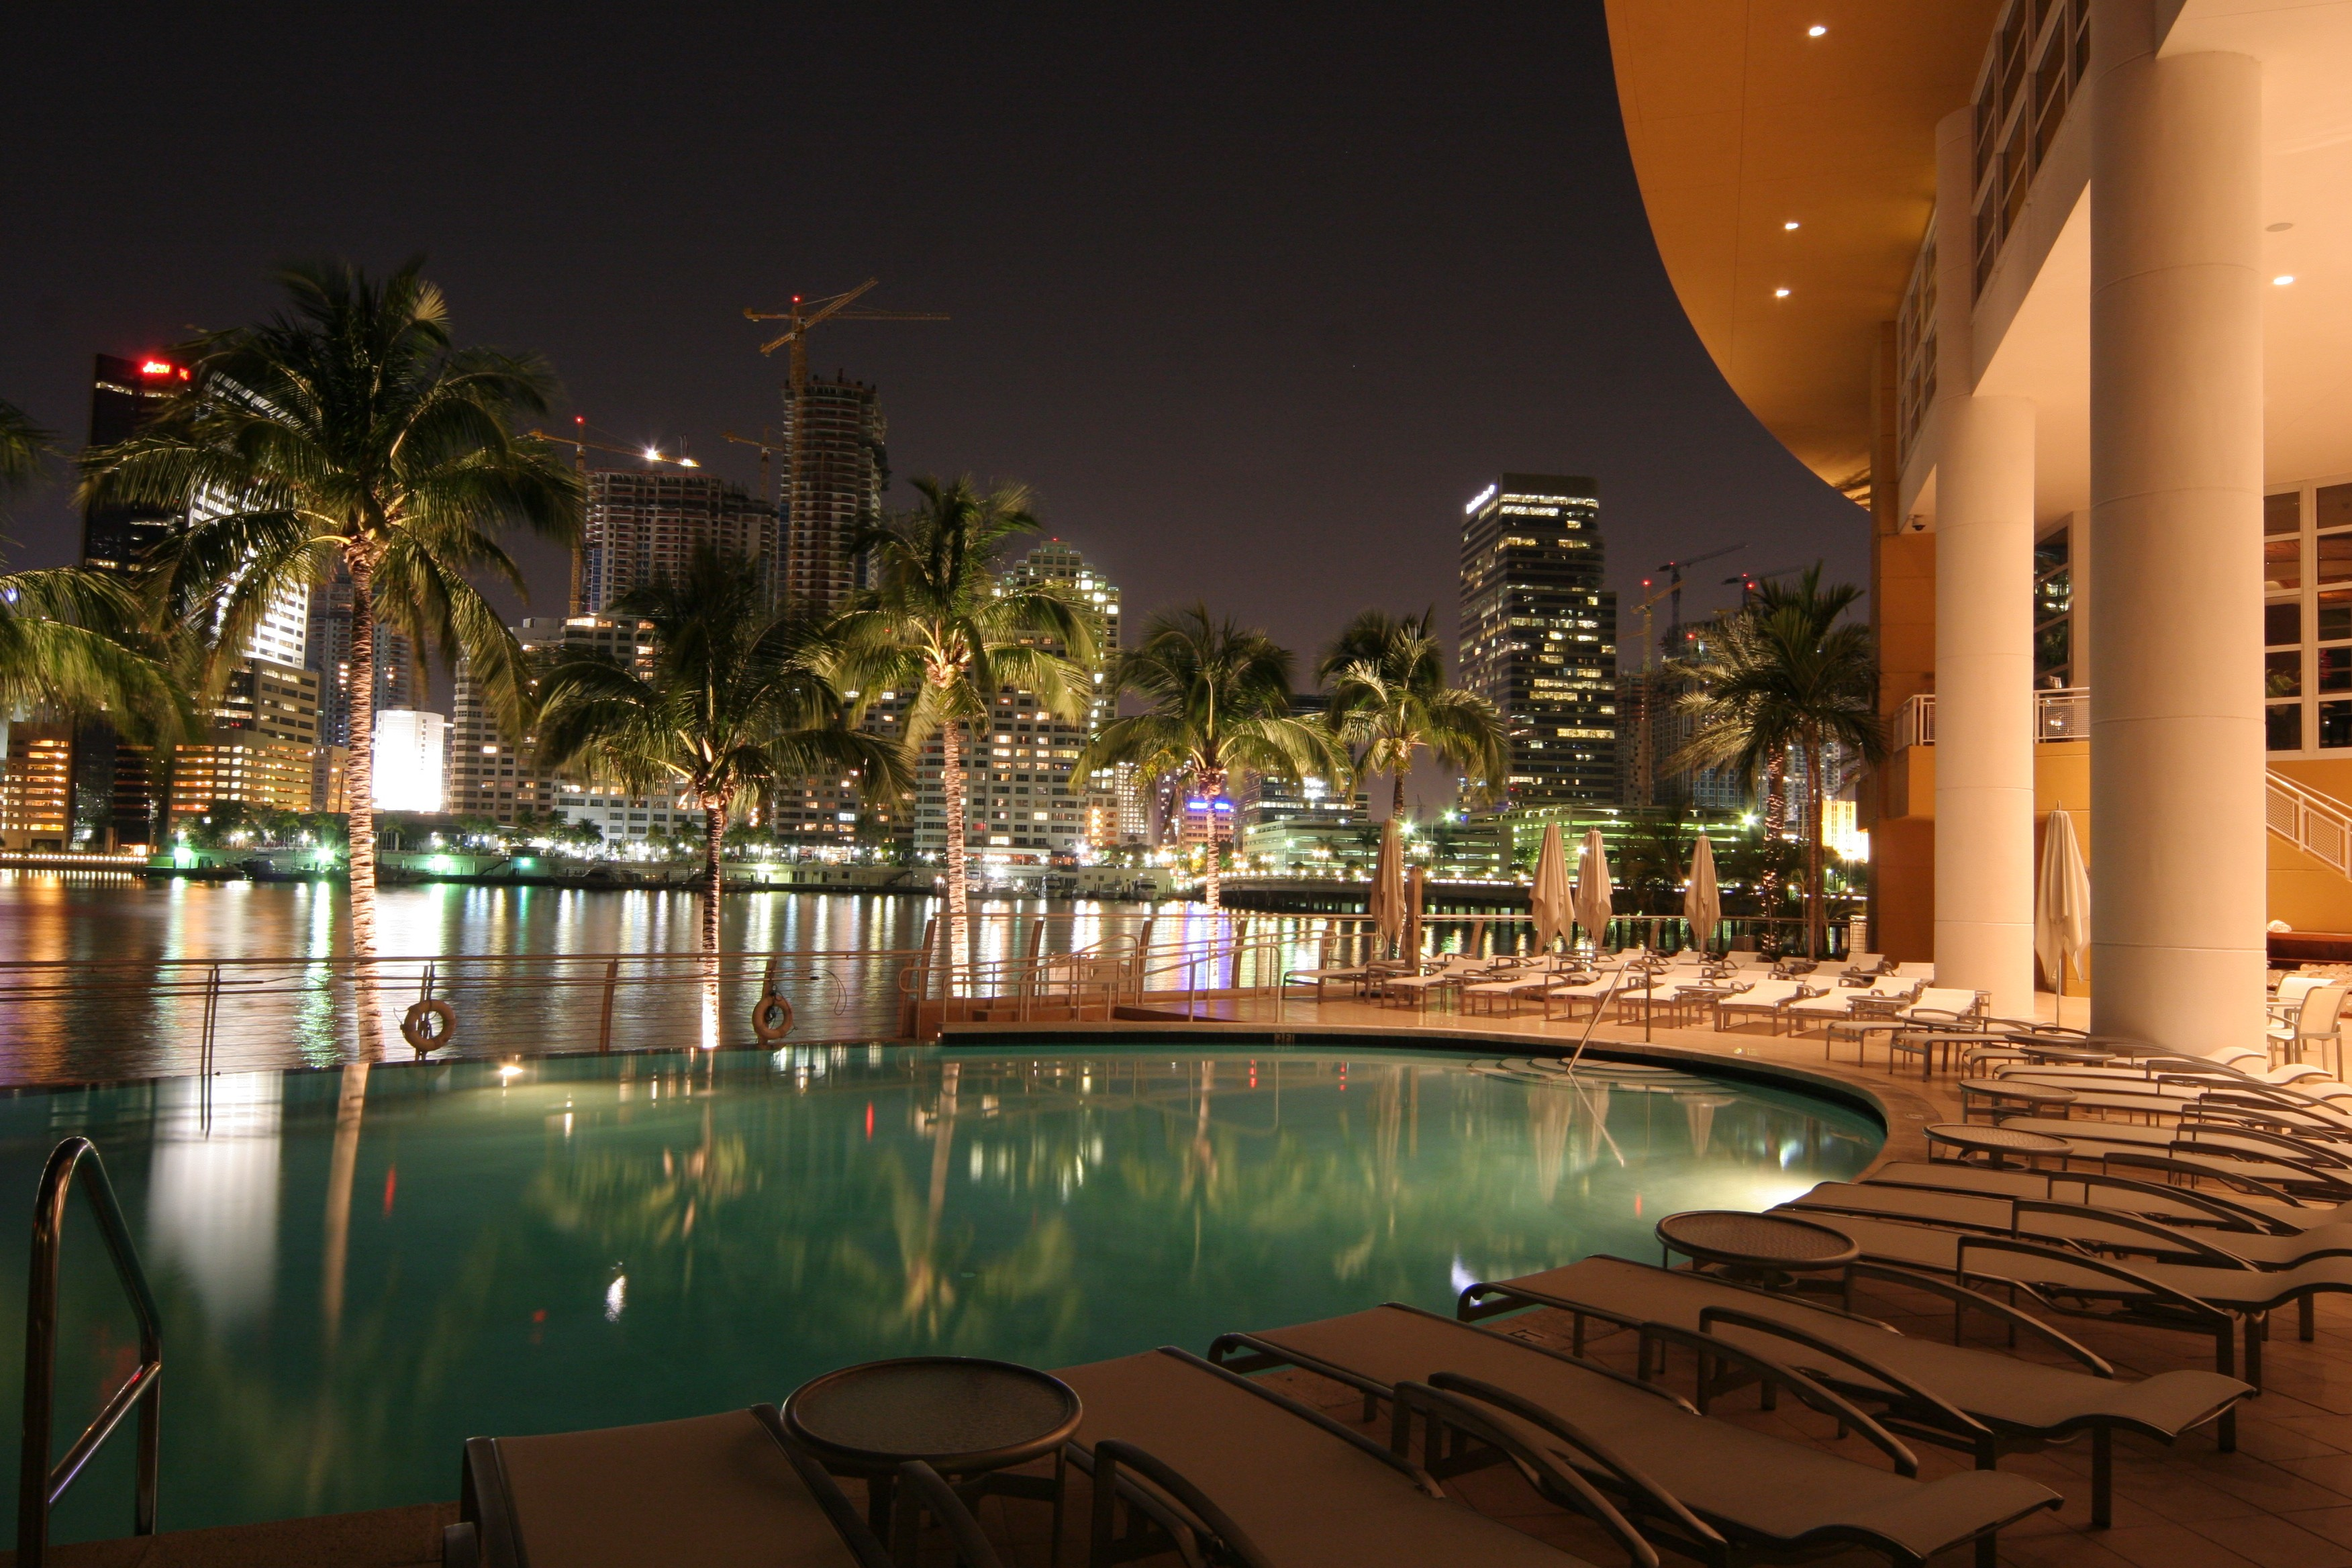 Celebrate Romance At Mandarin Orientals Hotels In Miami